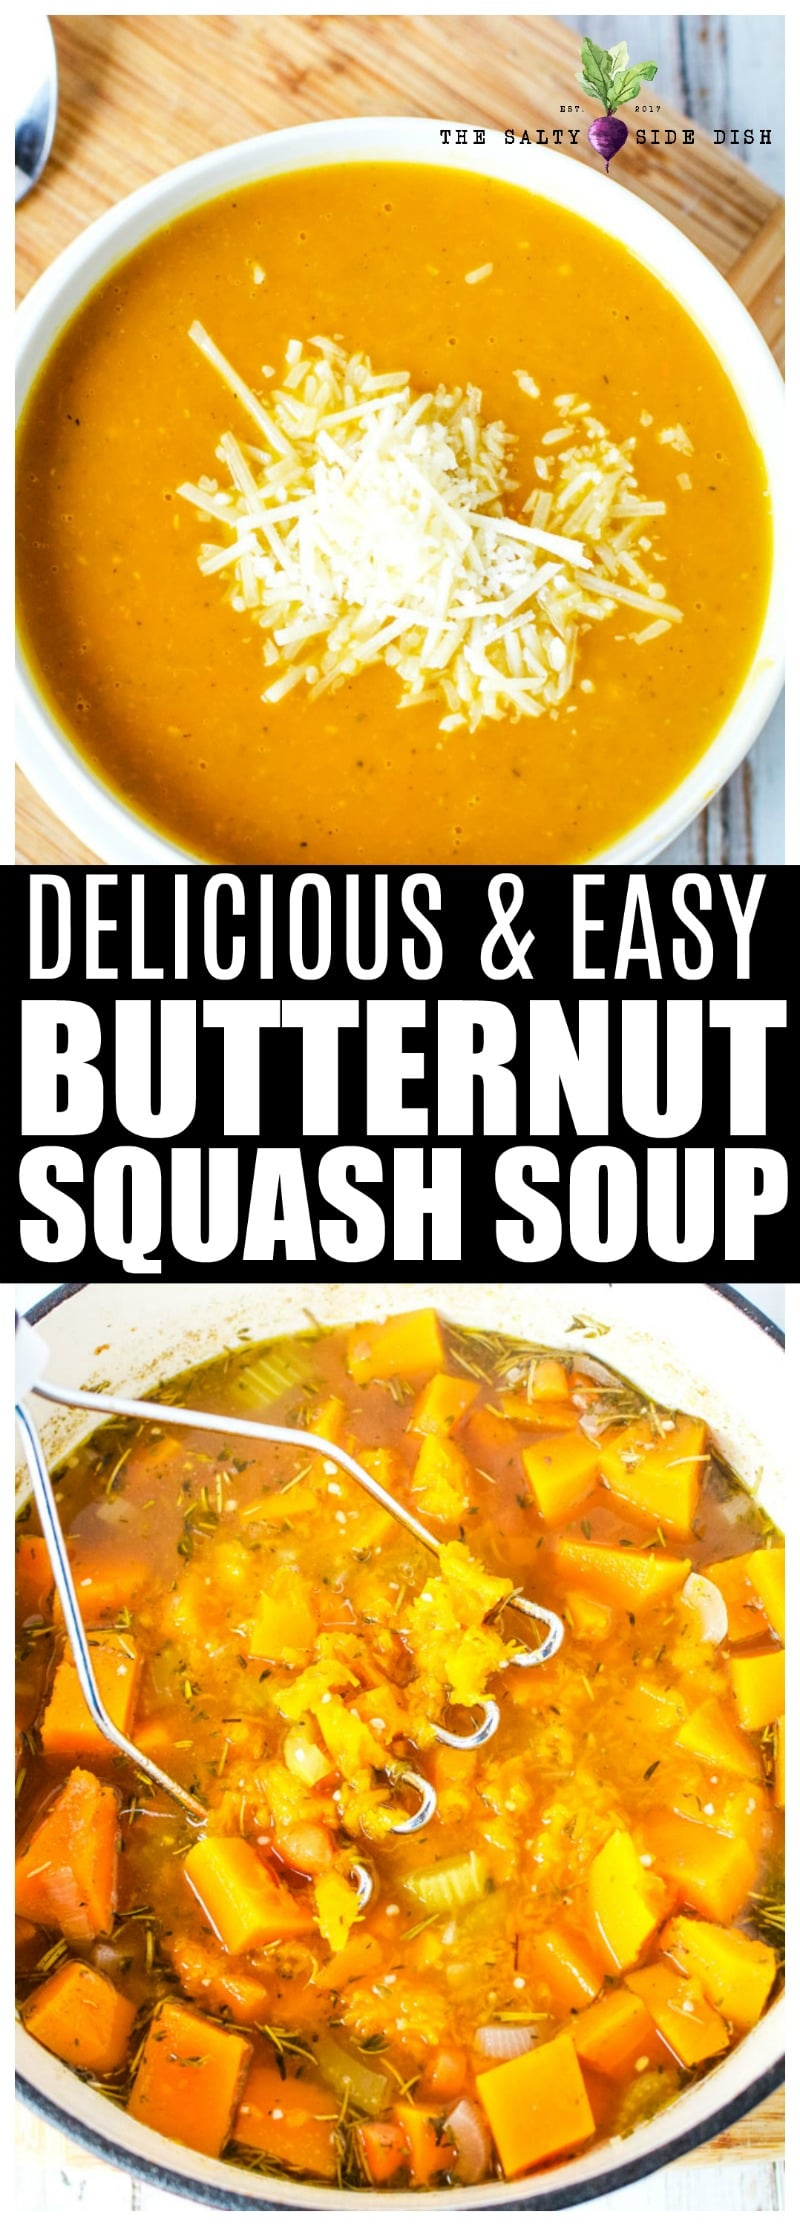 Butternut Squash Soup, a hearty and creamy winter squash soup that will remind you why you love the holidays so much #soup #squash #butternutsquash #holidays #winter